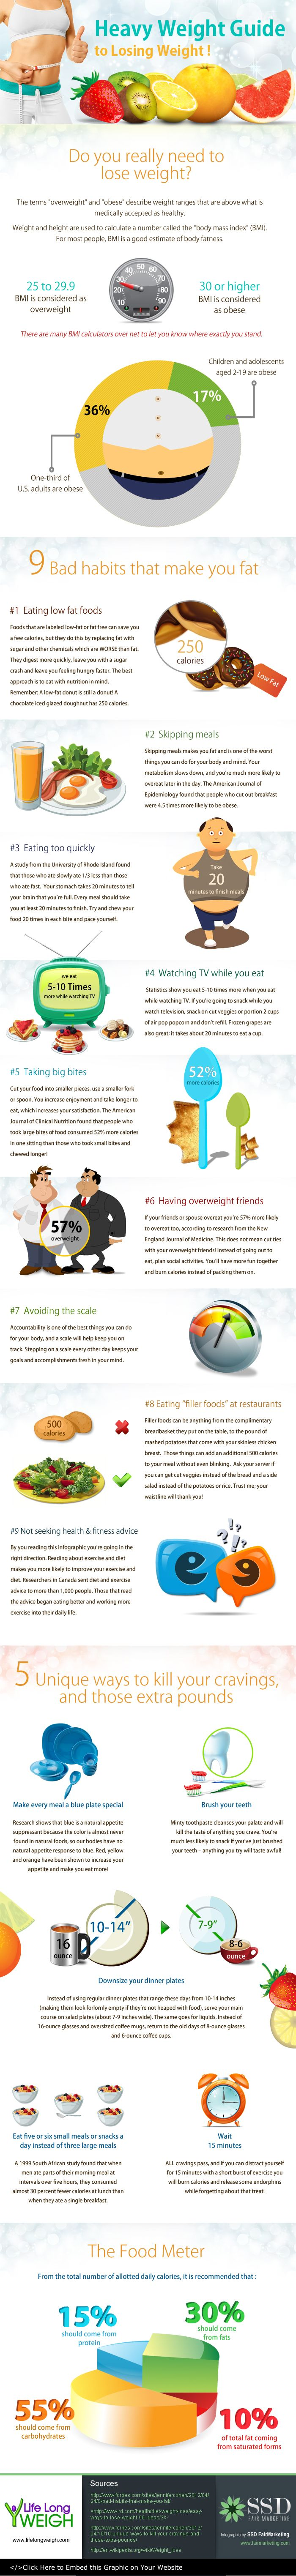 Heavy Weight Guides to Lose Weight